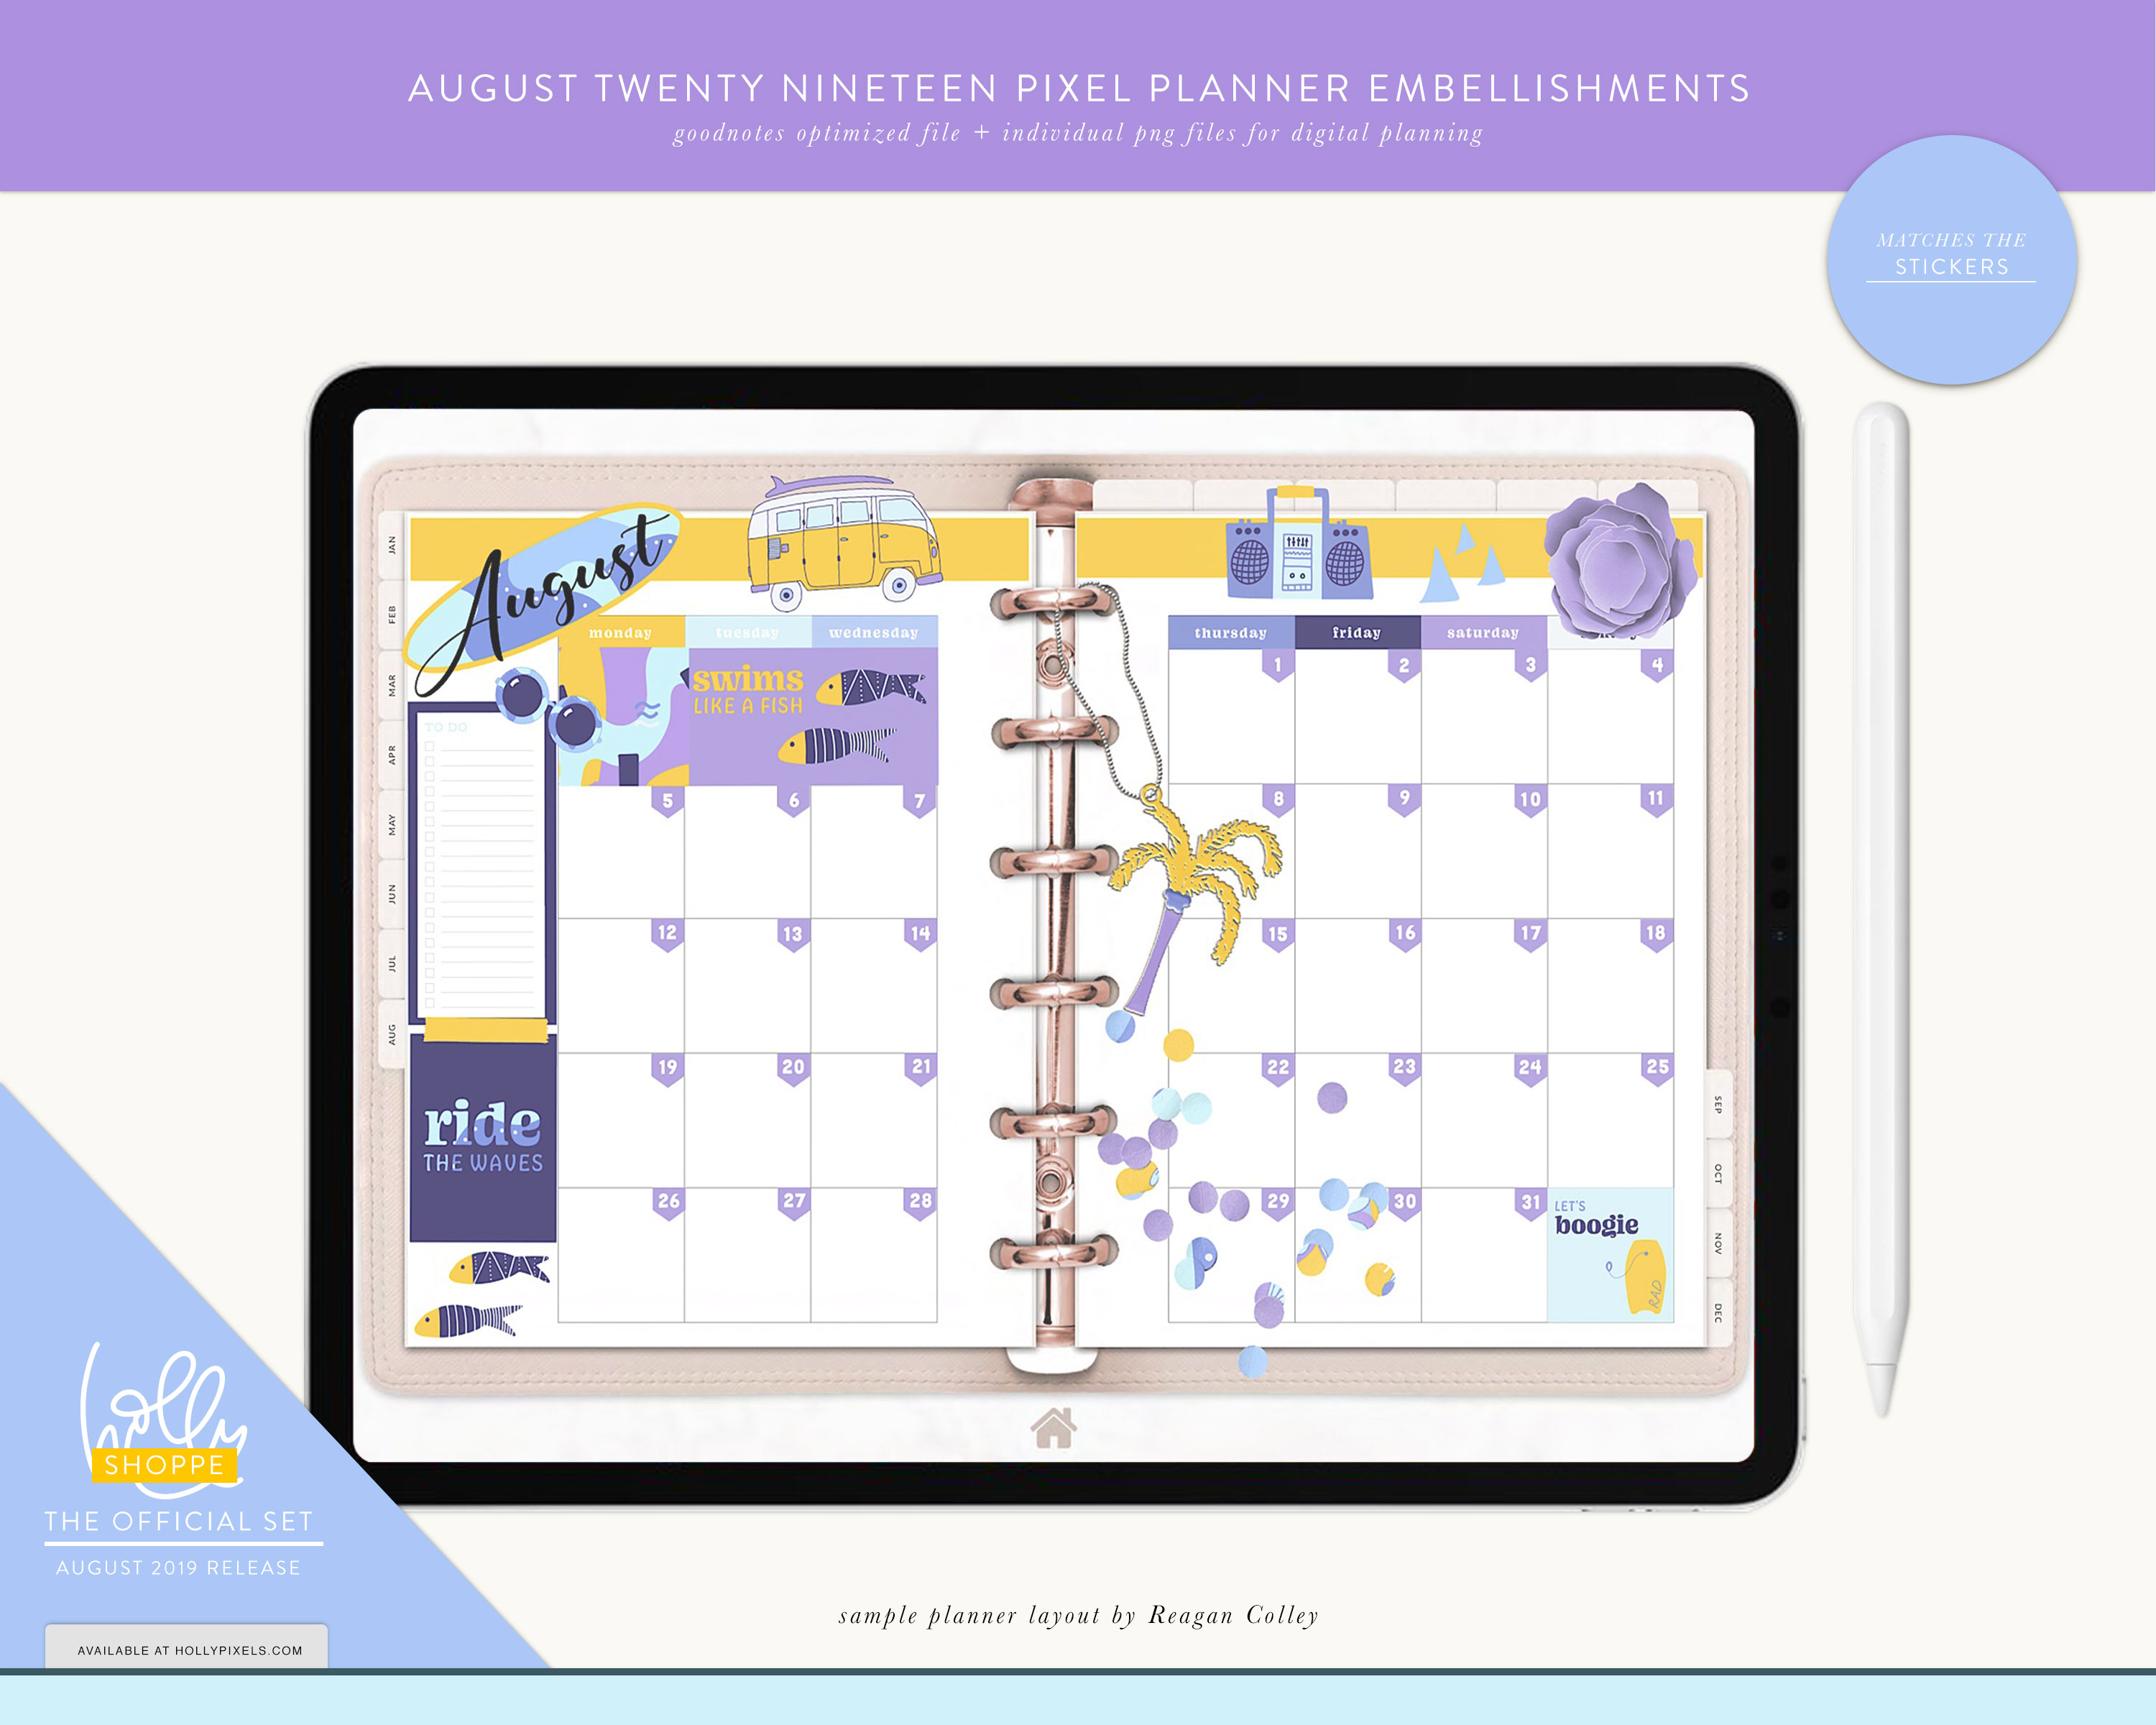 Plan Cute in August with Your Digital Planner 8